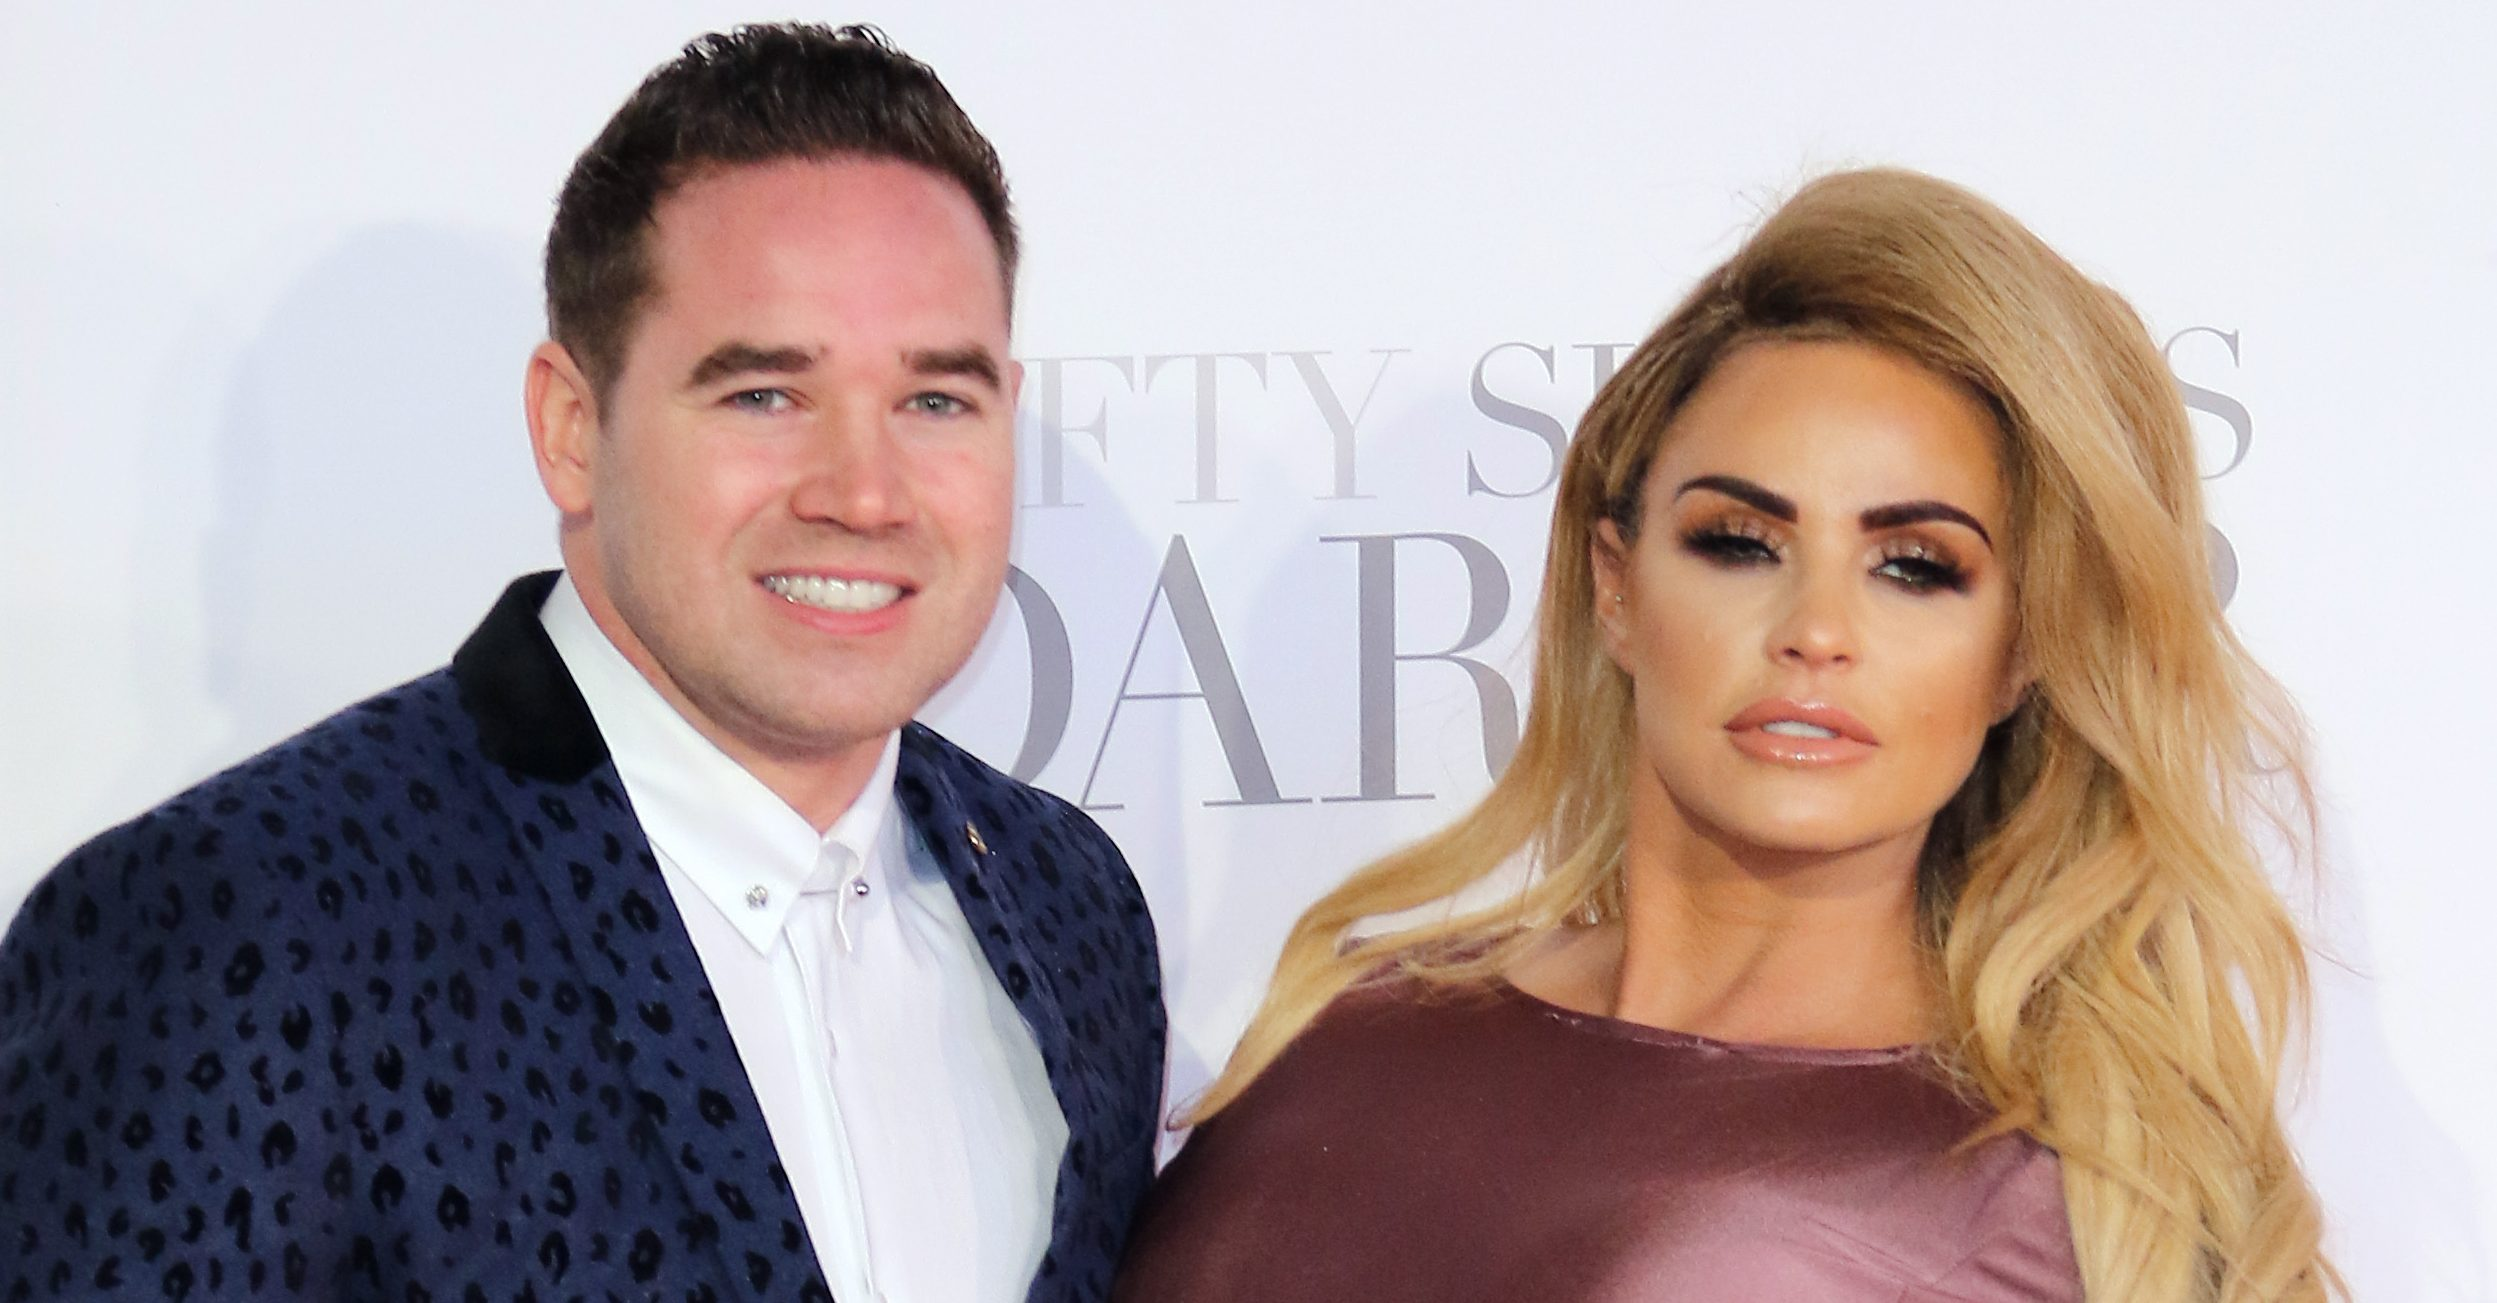 Katie Price's ex Kieran Hayler reveals surprise friendship with Peter Andre